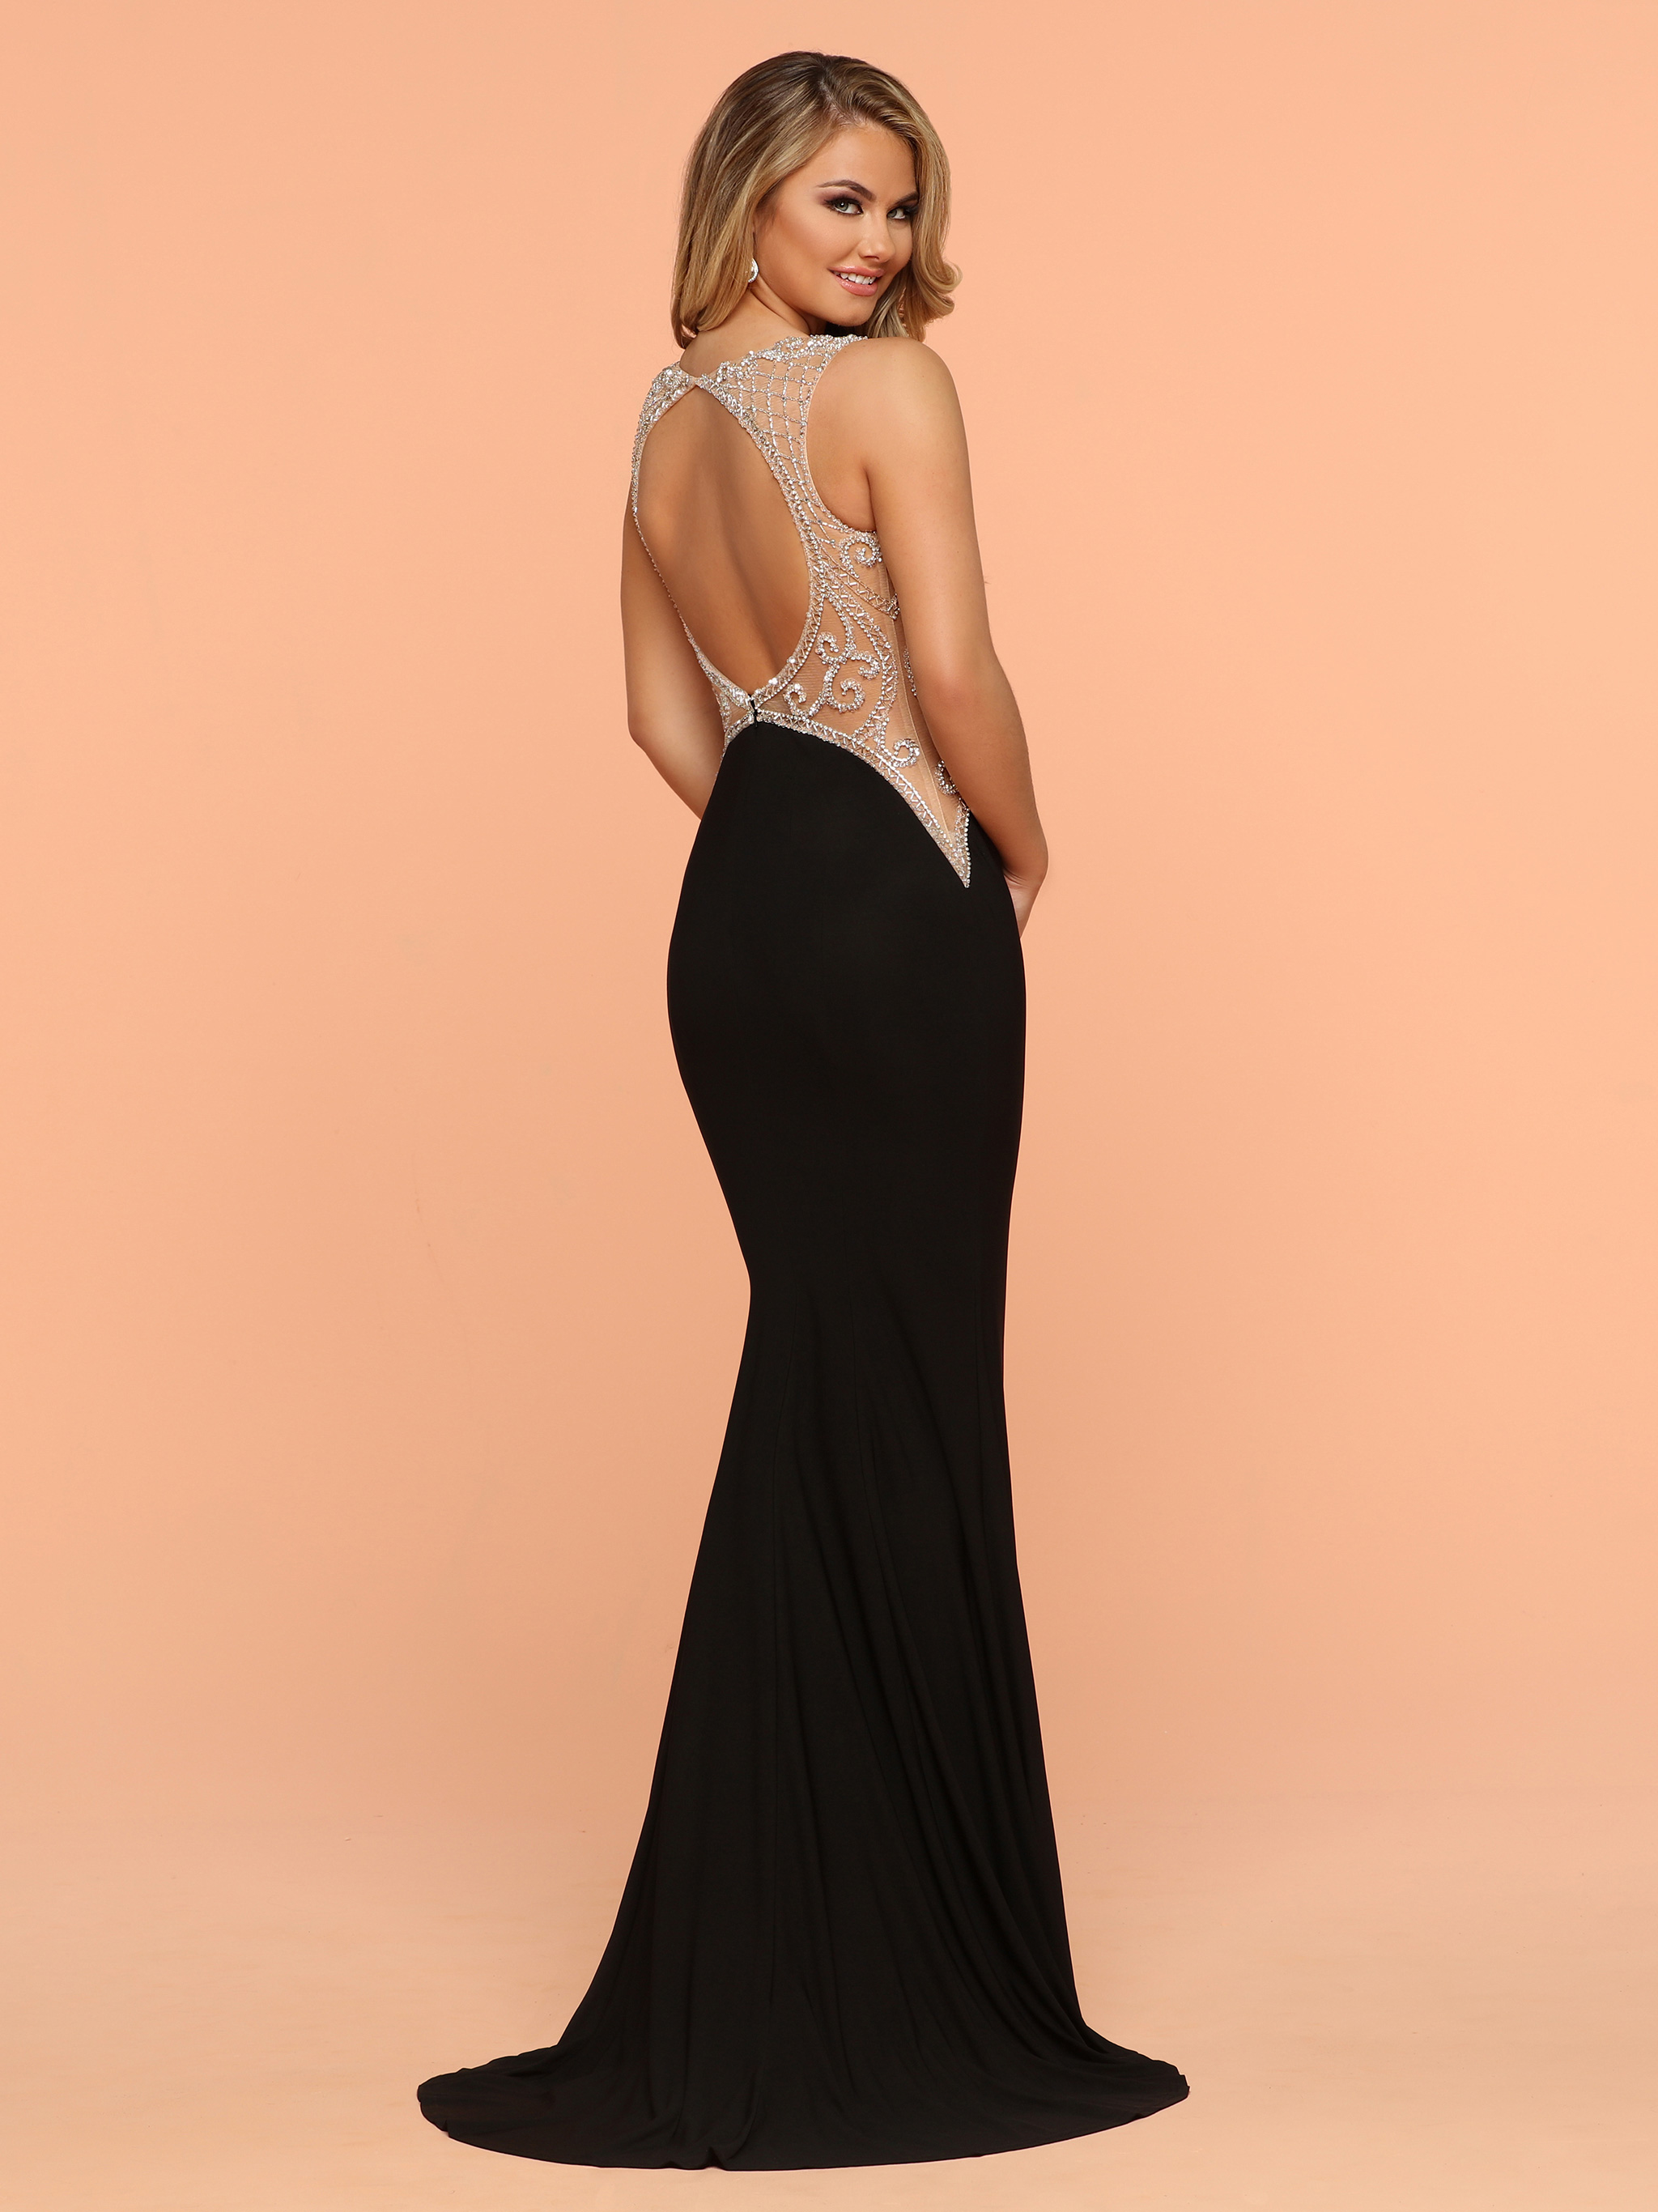 Image showing back view of style #71860